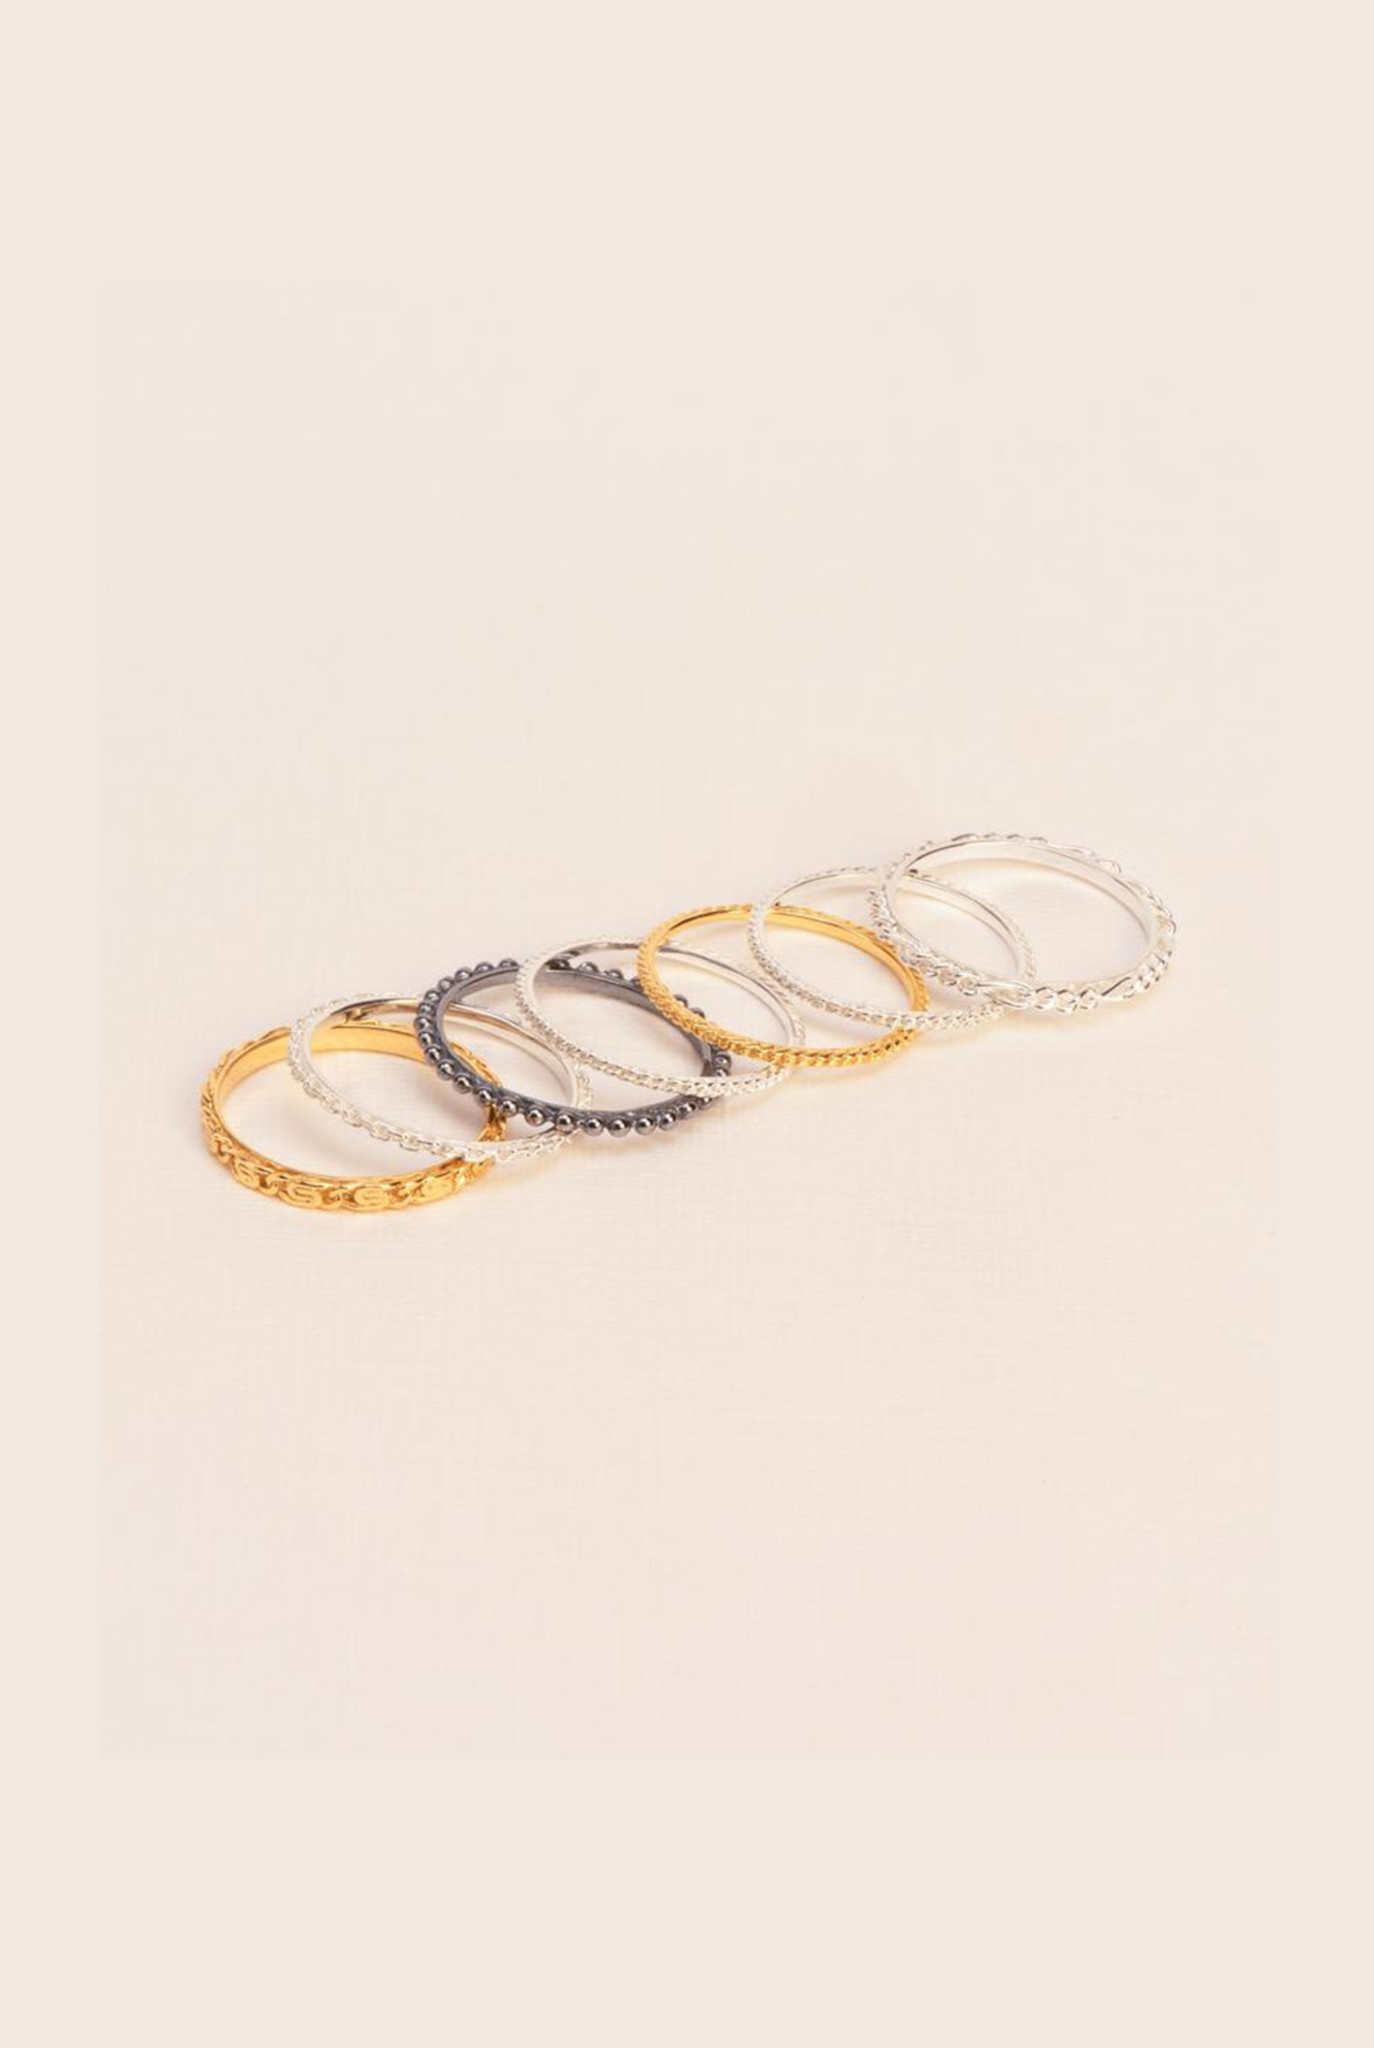 The 'Chapters' rings gold plated and silver mix